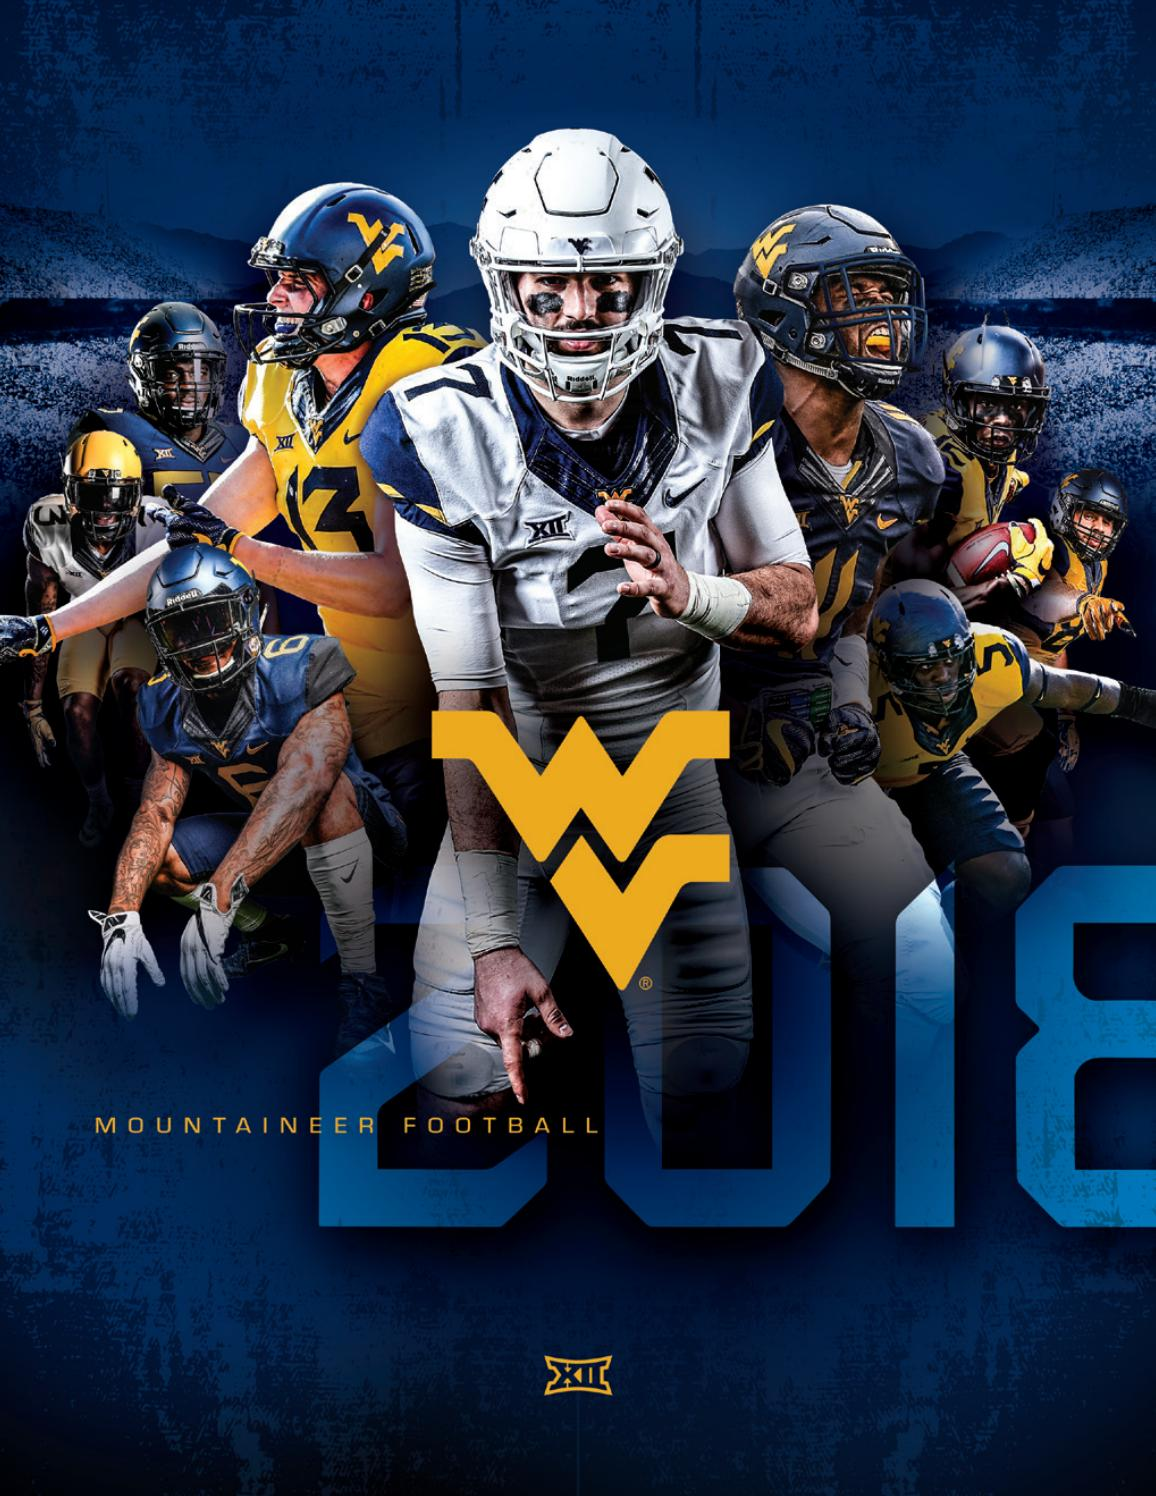 5e5baaa7ff1 2018 WVU Football Guide by Joe Swan - issuu